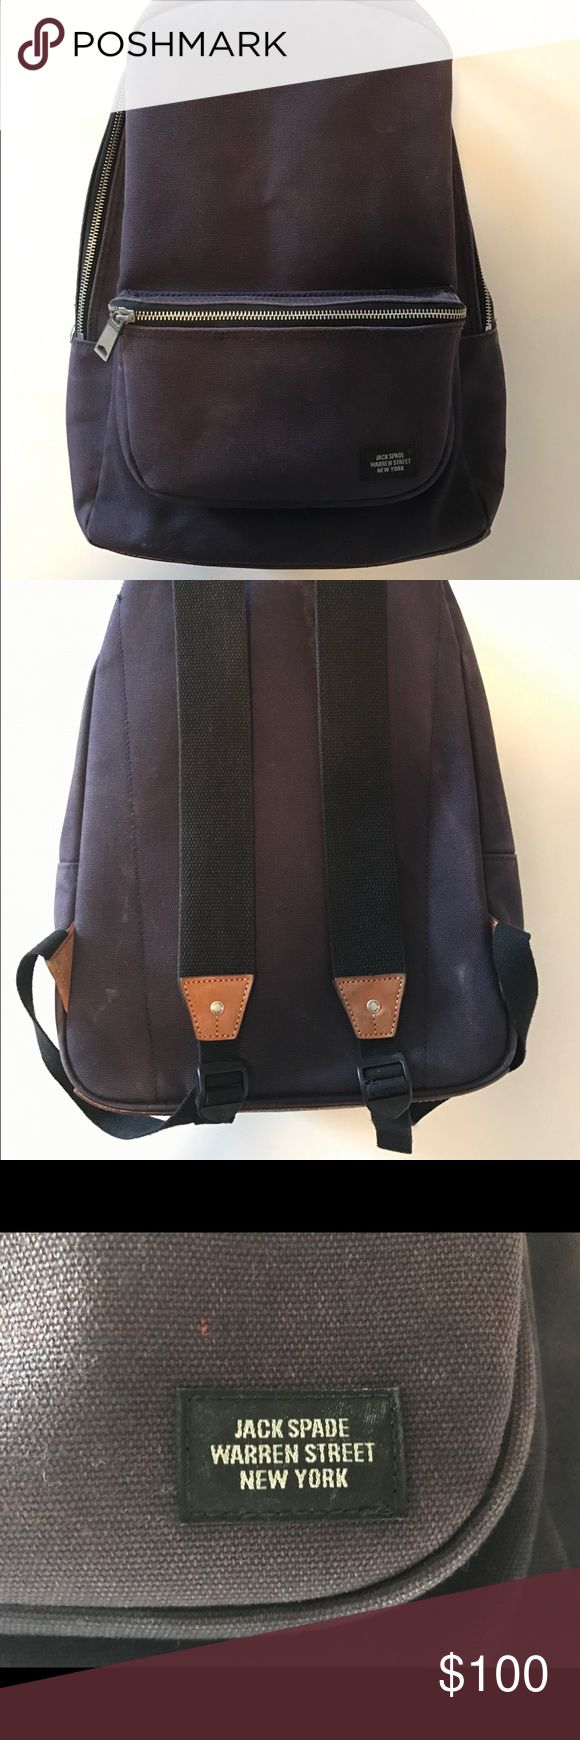 Jack Spade Backpack Navy canvas and leather Jack Spade backpack in collaboration with Beauty & arrows purchased directly from Jack Spade in NYC. Shows sings of wear (see photos) but still has a lot of life ahead! Jack Spade Bags Backpacks